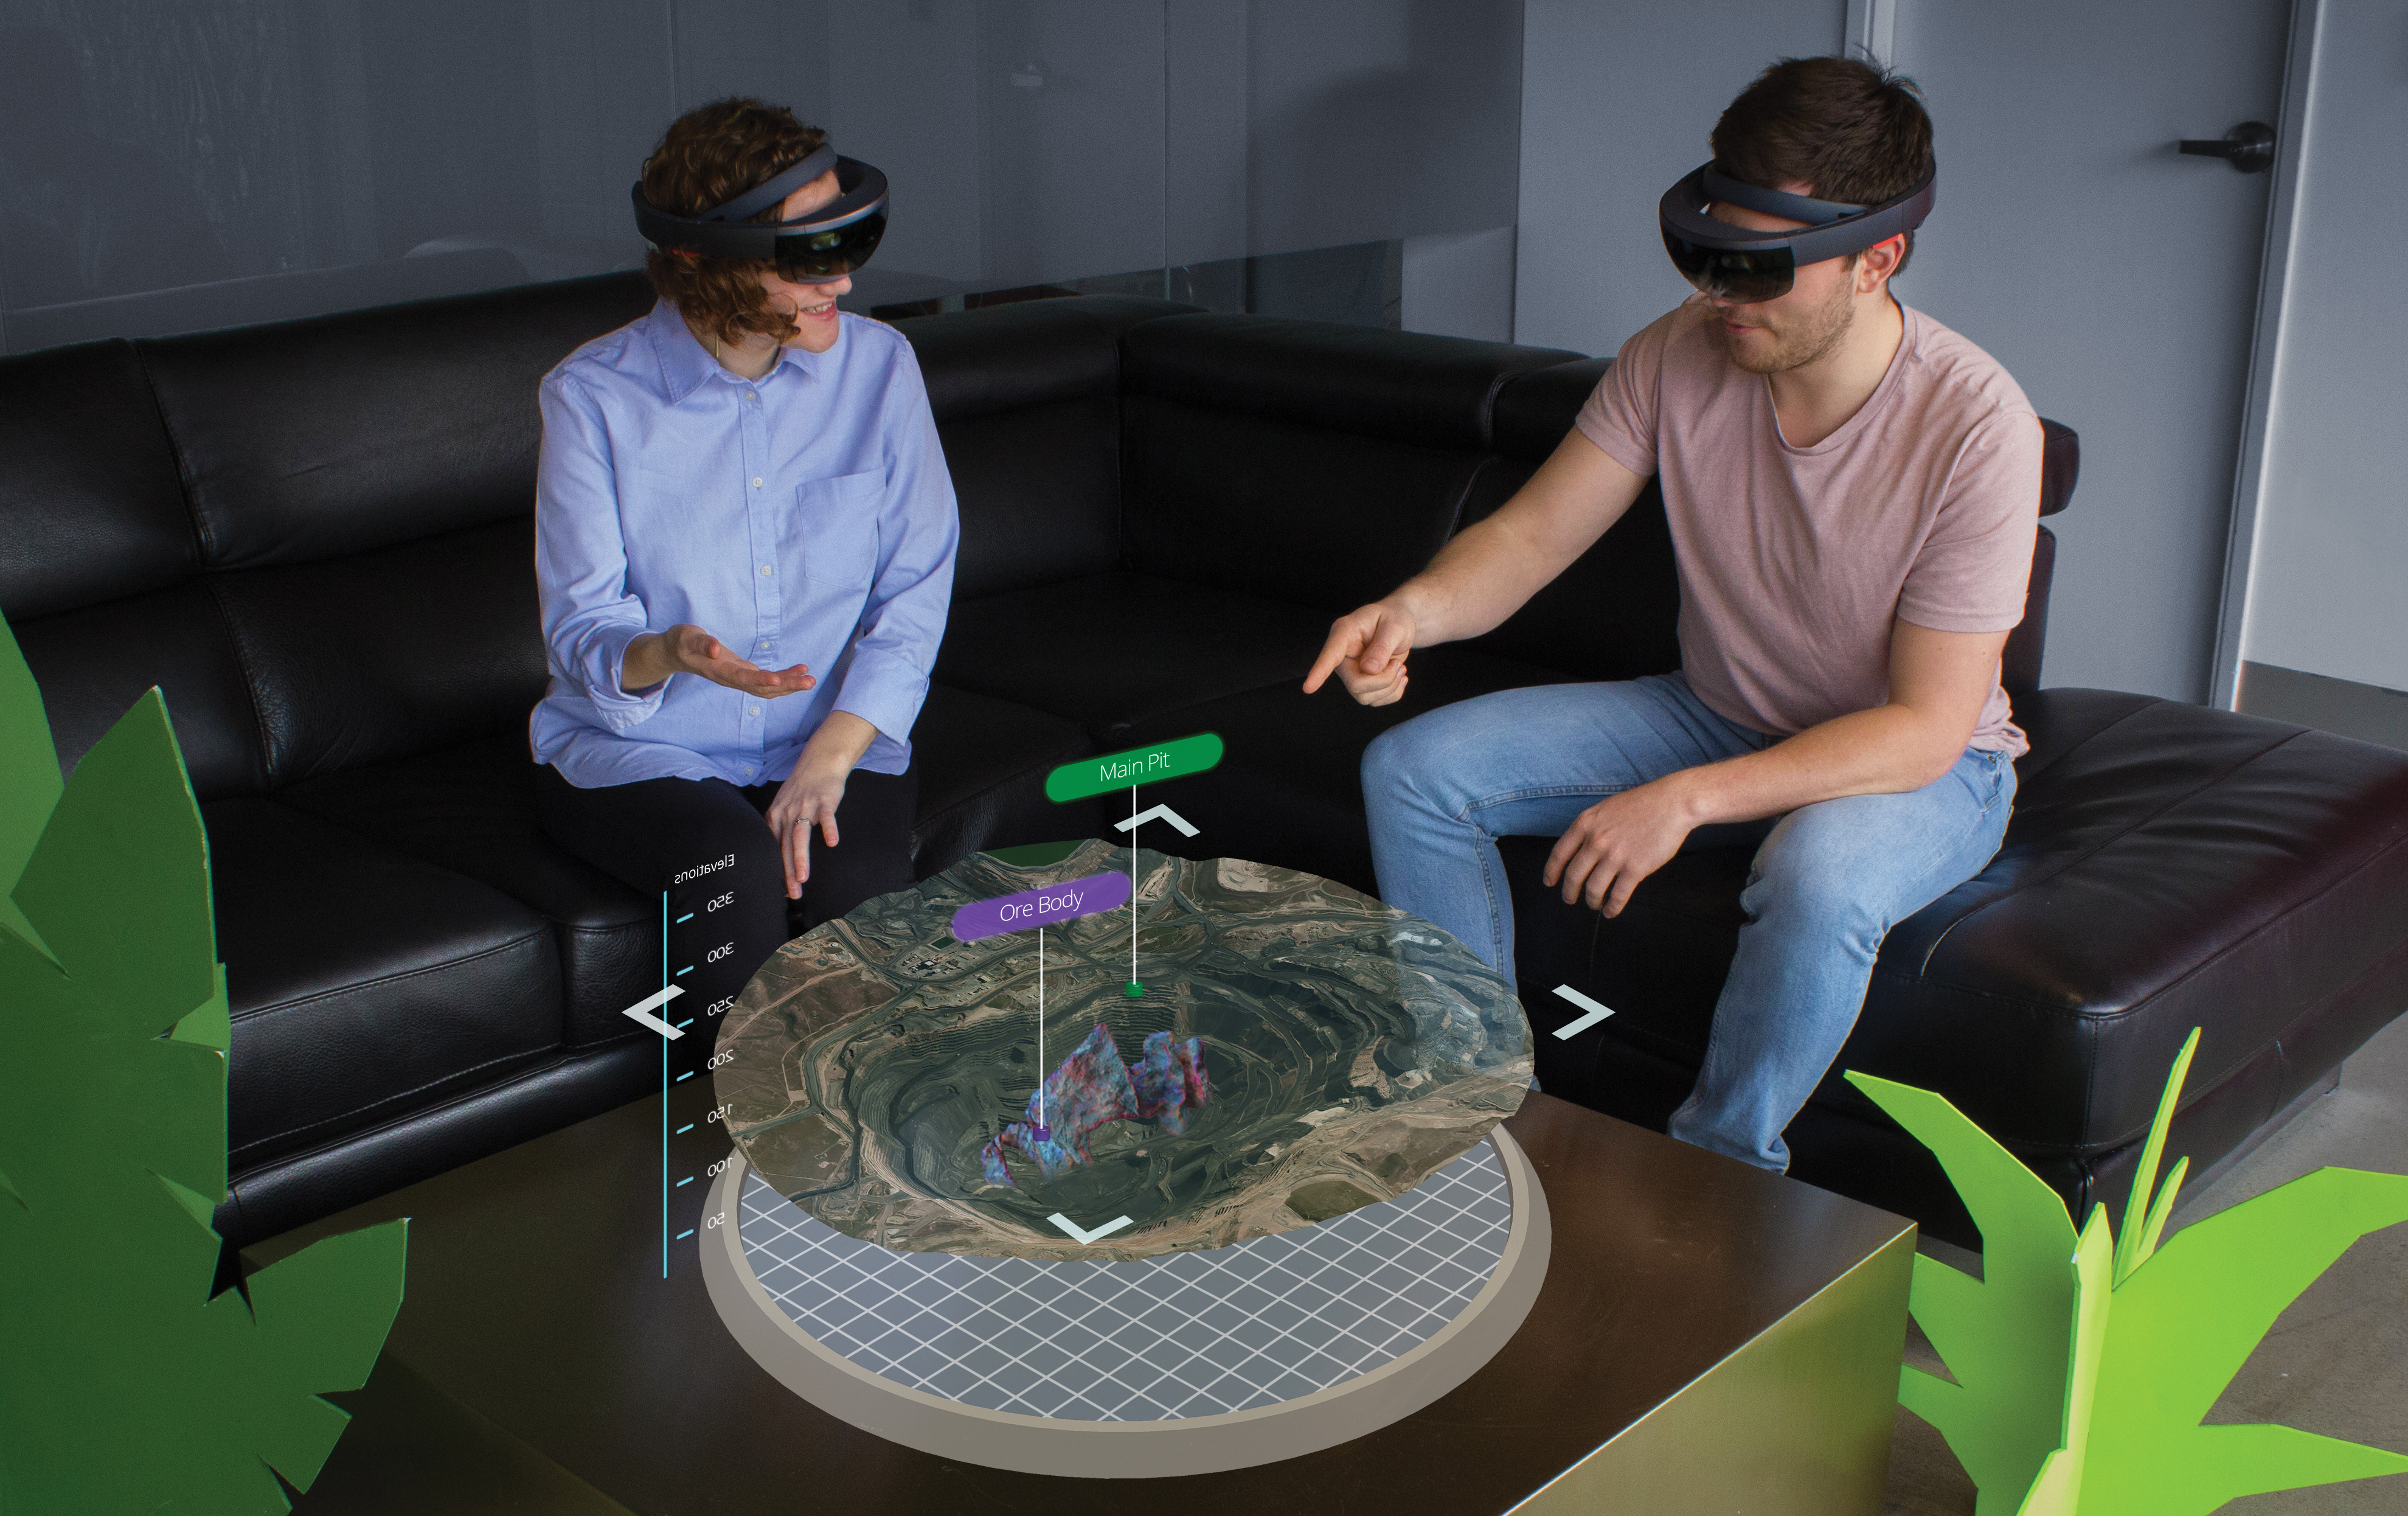 people wearing VR headsets explore a virtual mine